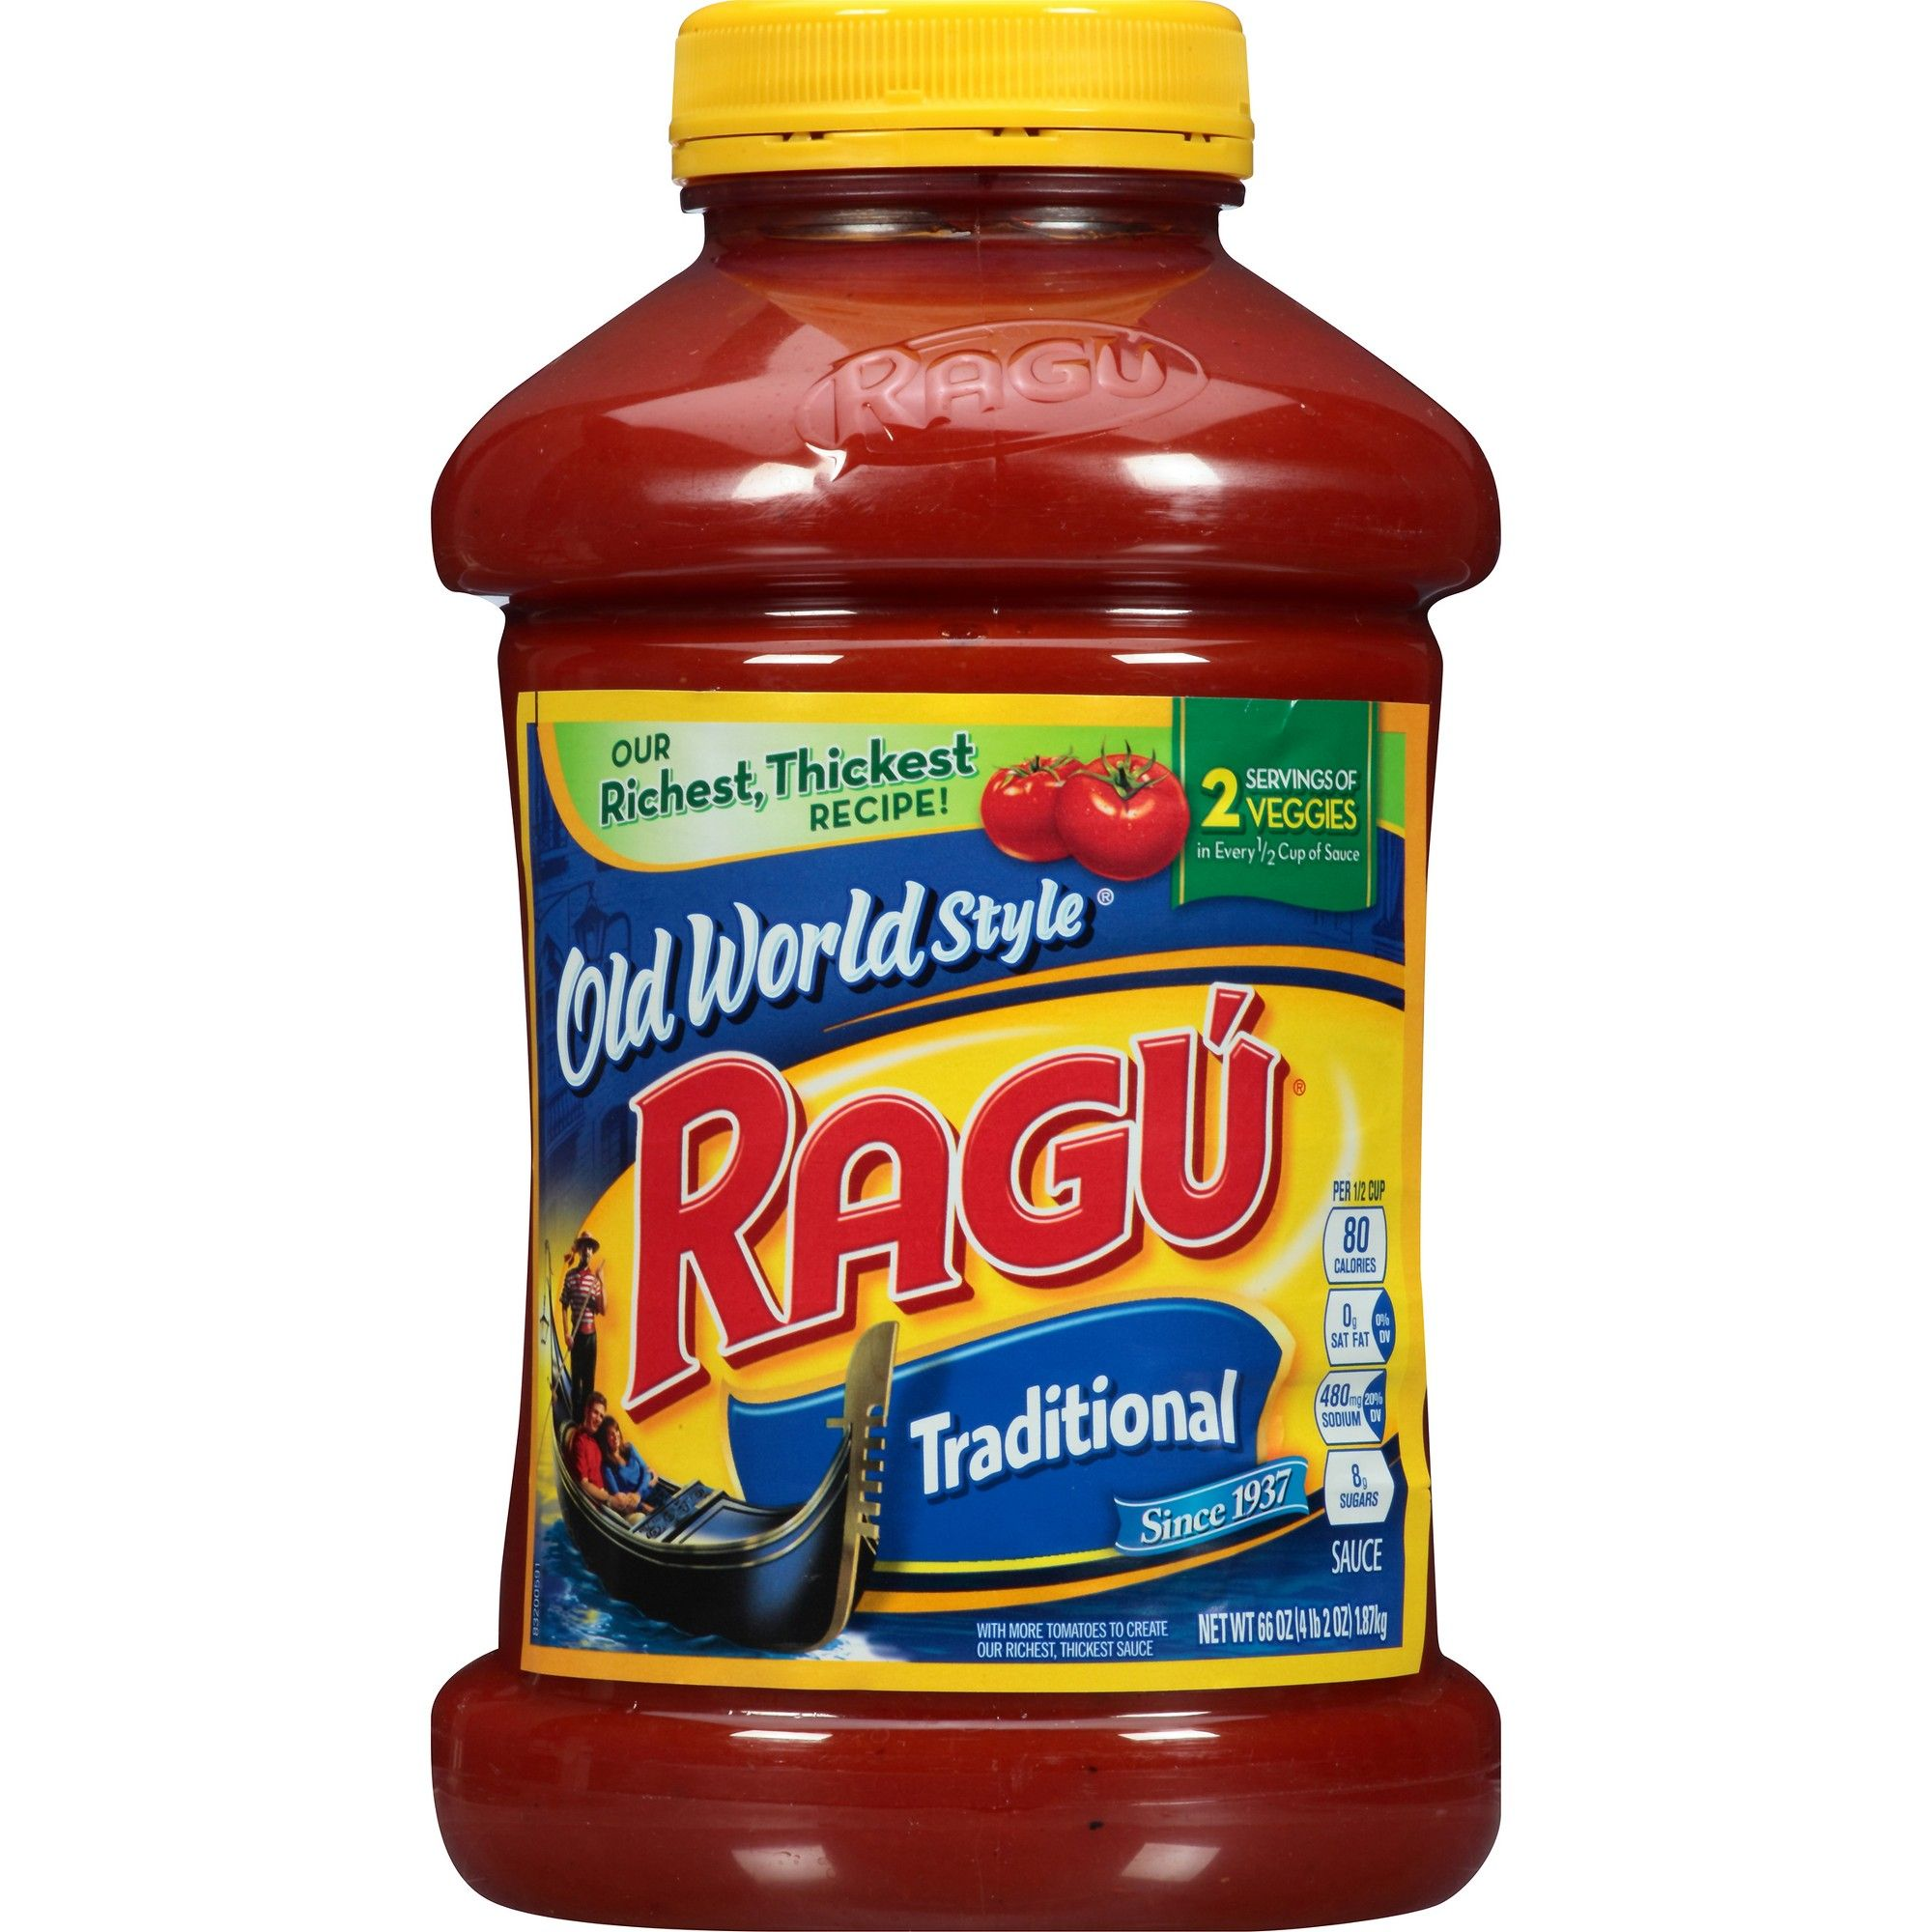 Ragu Old World Style Traditional Pasta Sauce 66oz Pasta Sauce Grocery Foods Ragu